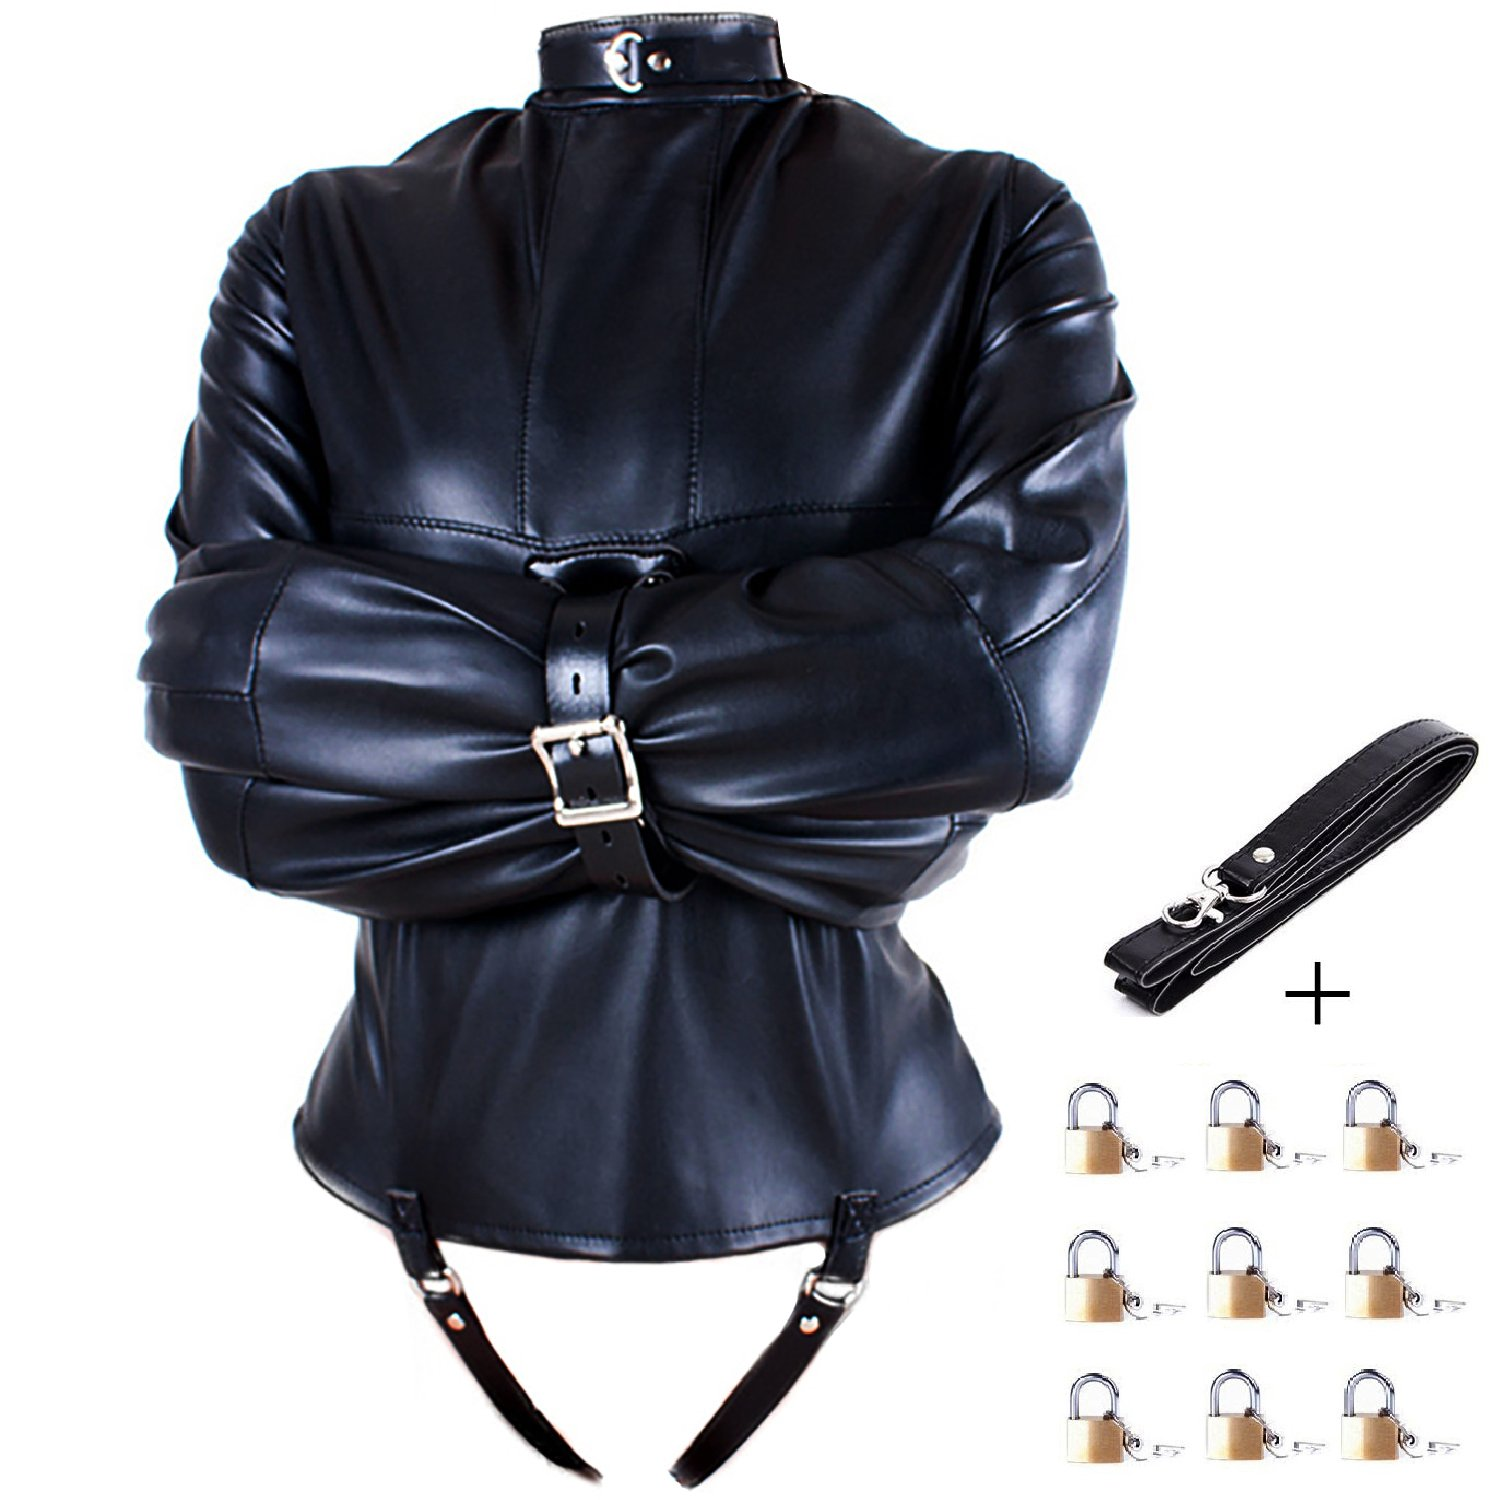 Aaijia Unisex Adjustable High Neck Leather Harness Arm Lockable Back Belt Tight Shirt